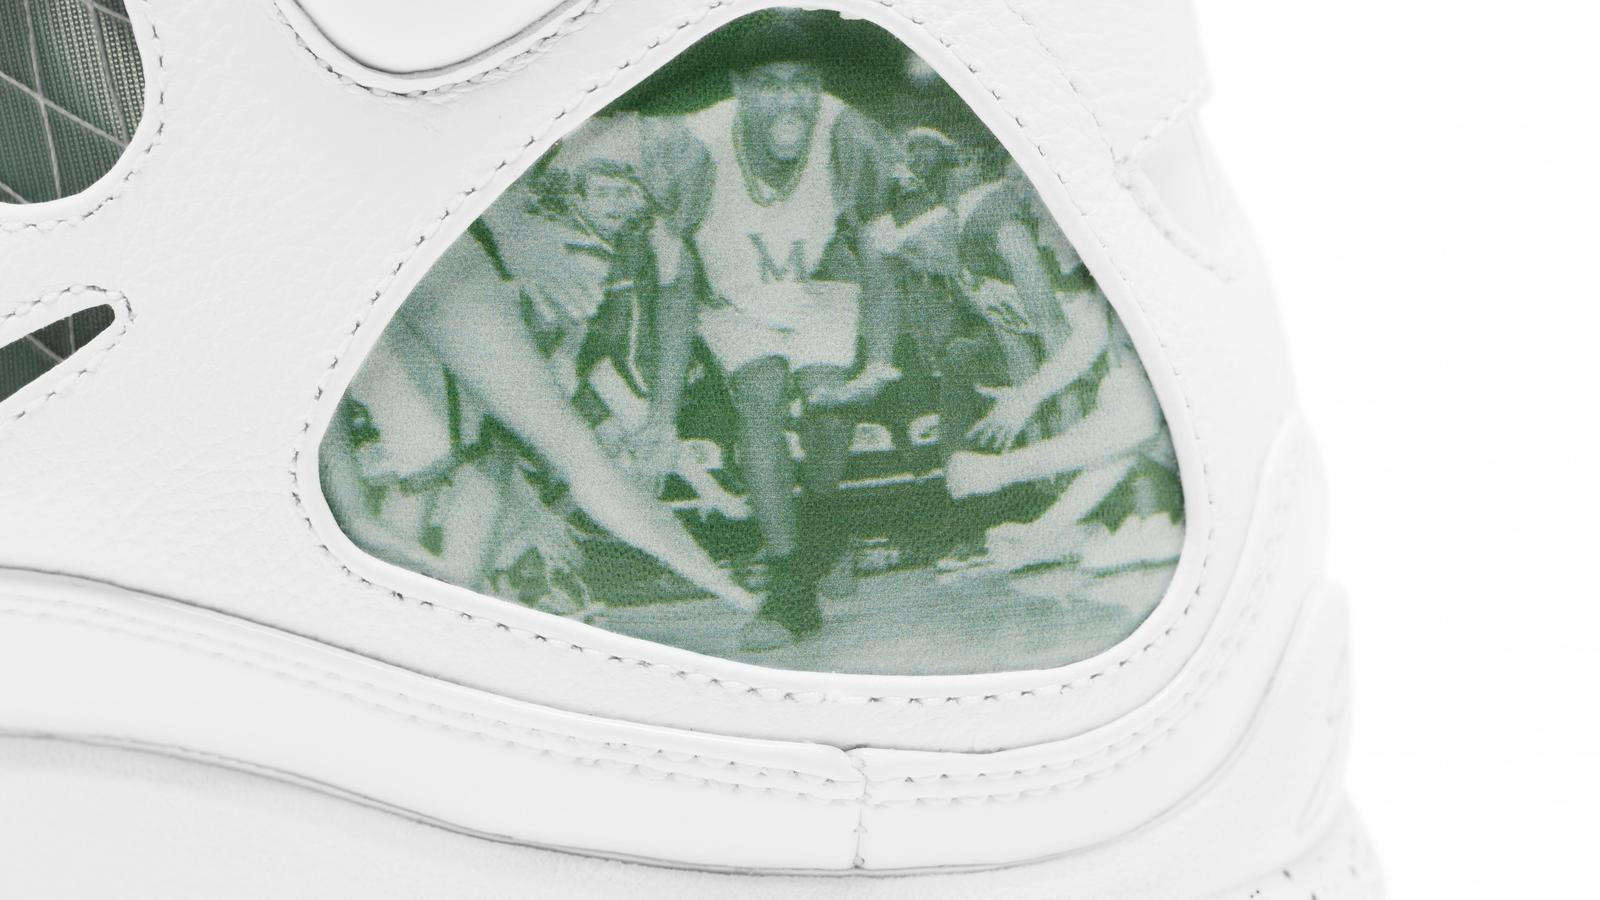 c60f7e60a4b ... september 26 2009 today nike nysenke introduced the last in a series of limited  edition release date limited edition styles of air max lebron vii ...